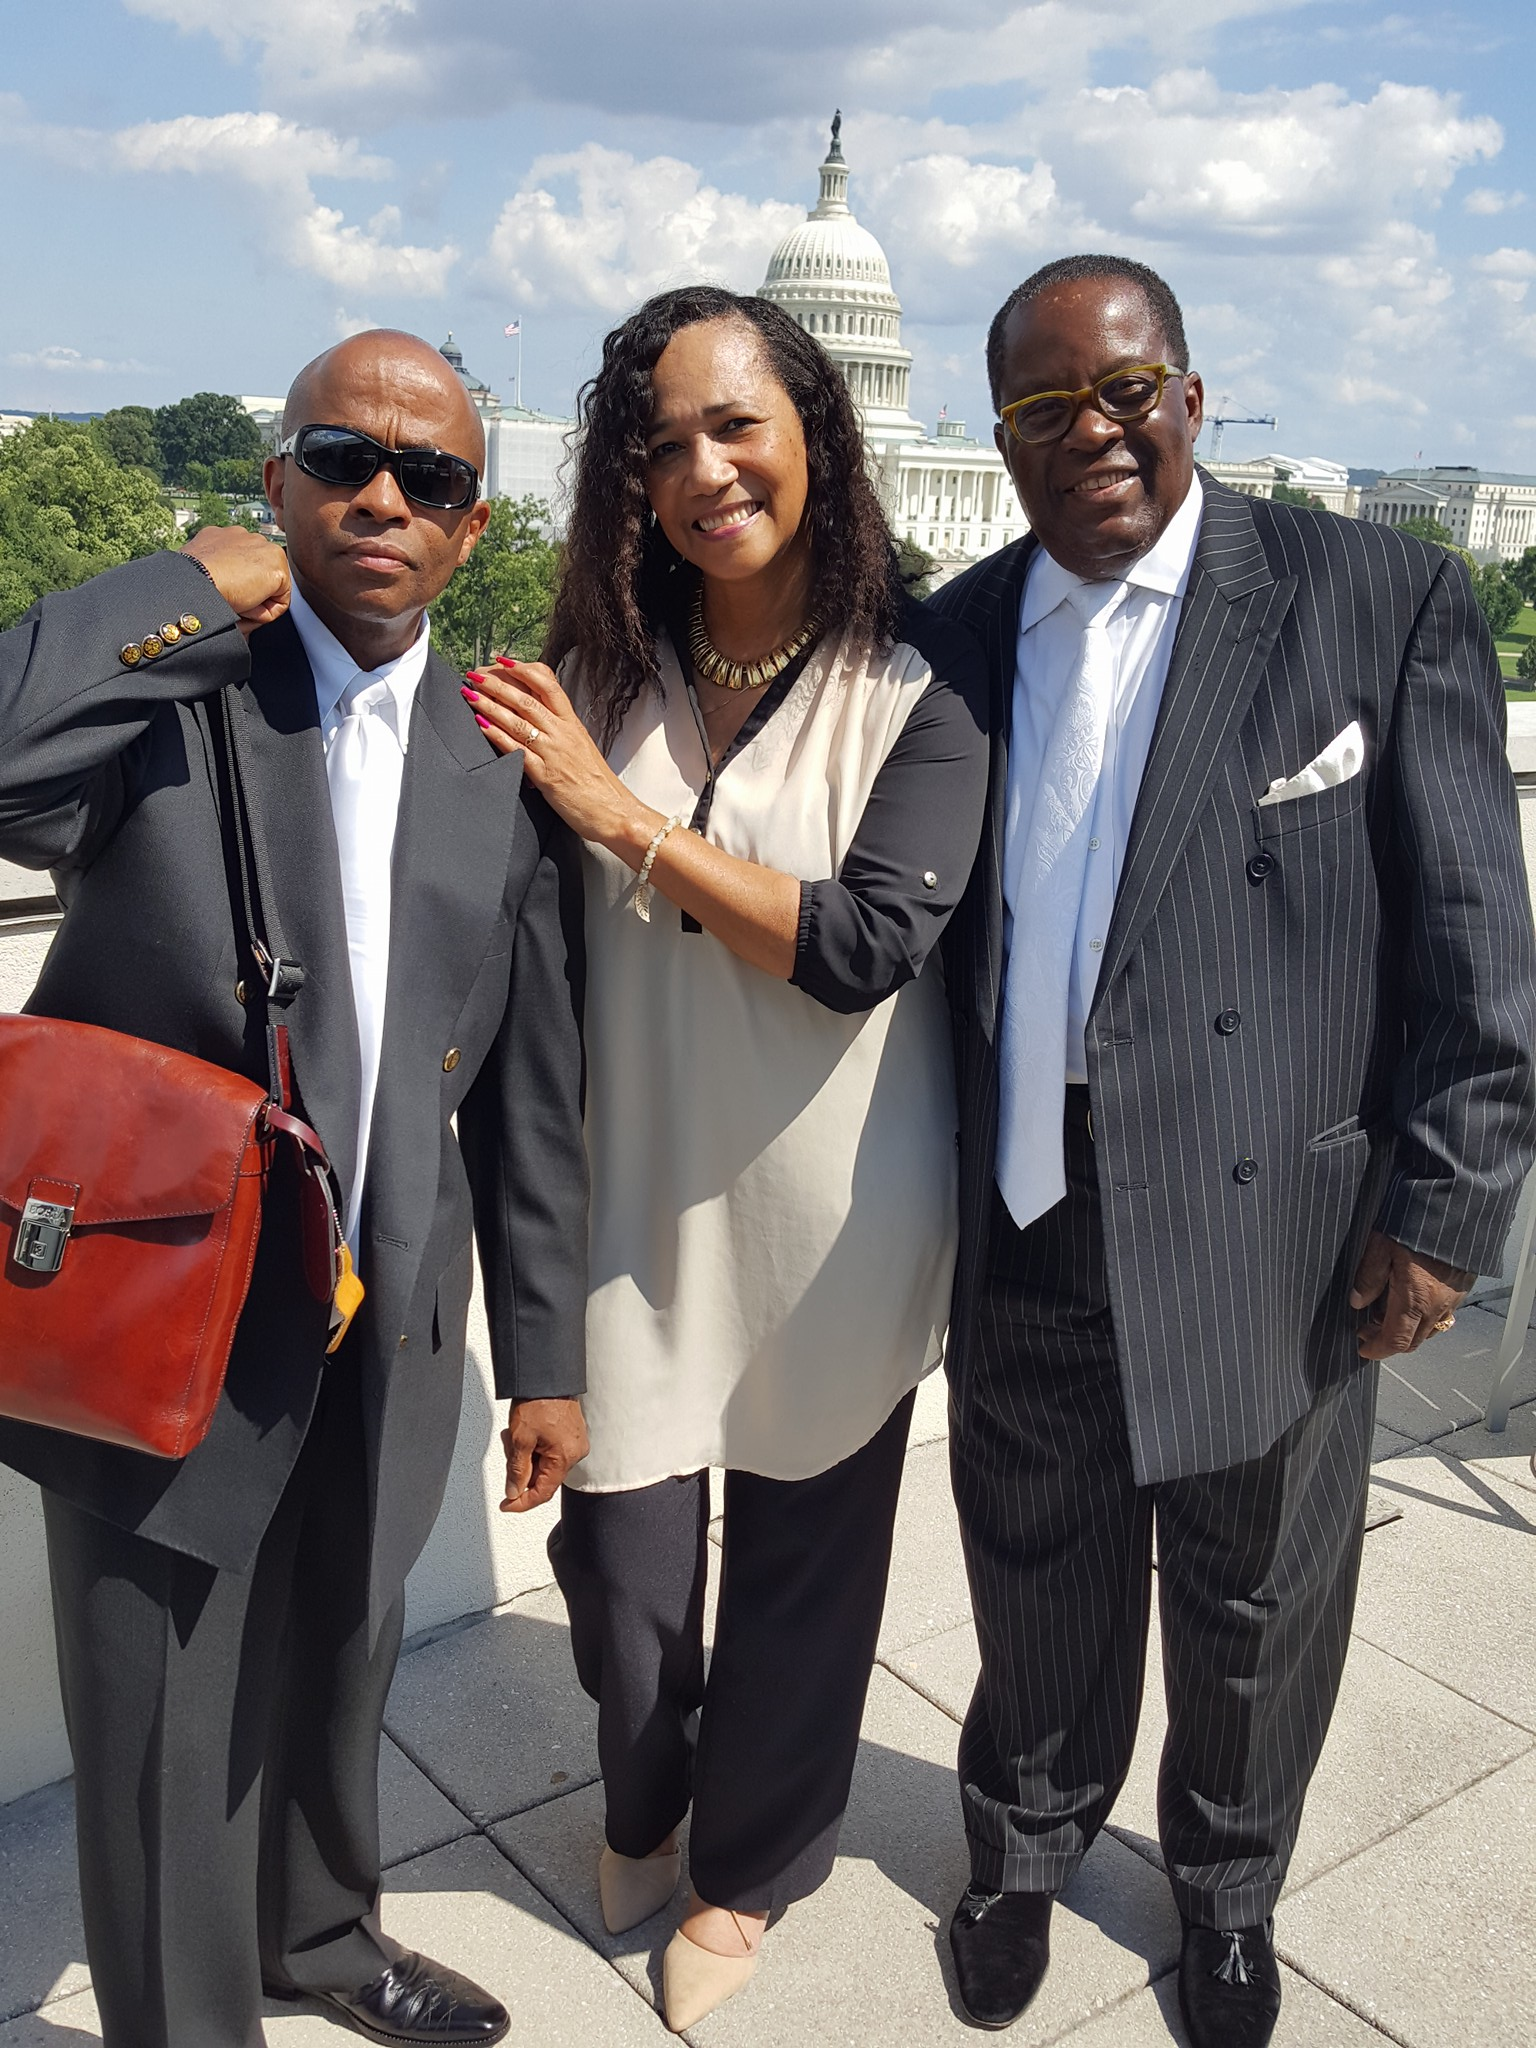 Johnny Long Playing Tenor Sax with Kenny Holmes (Guitar) and Denise Johnson (Drums) at the United States Capitol in Washington, DC